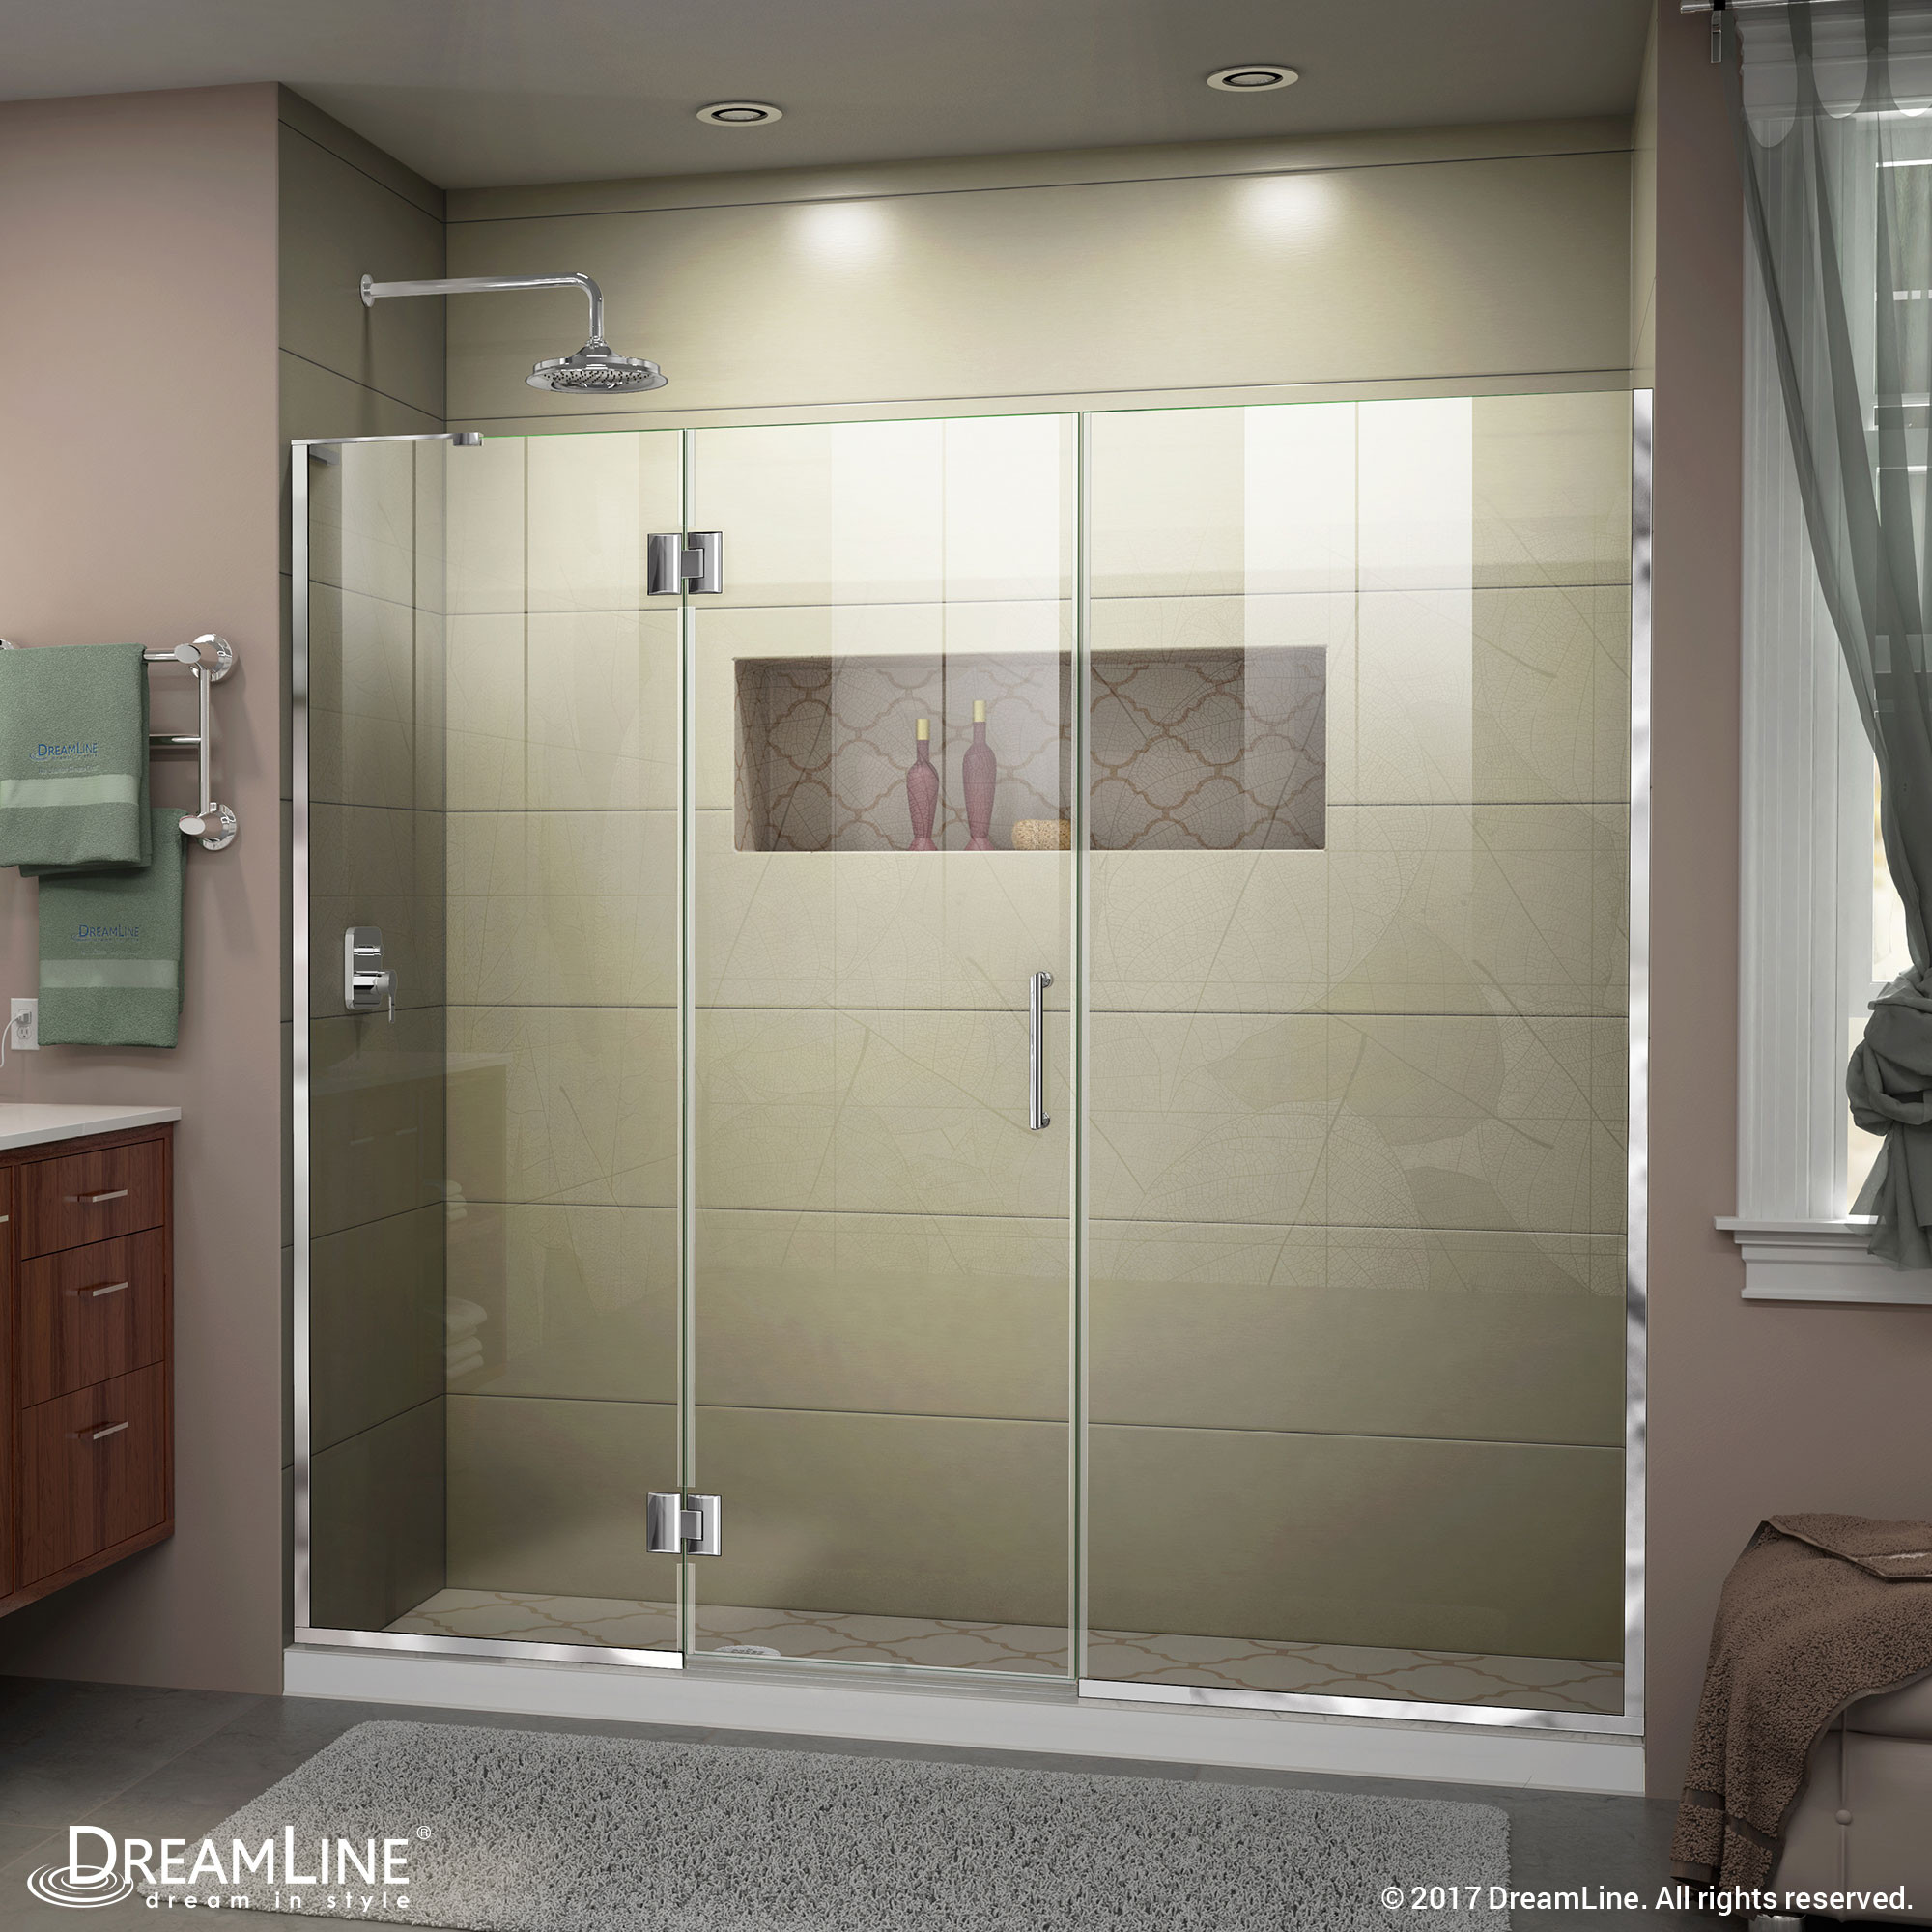 DreamLine D3262272L-01 Chrome Unidoor-X Hinged Shower Door With Left-wall Bracket